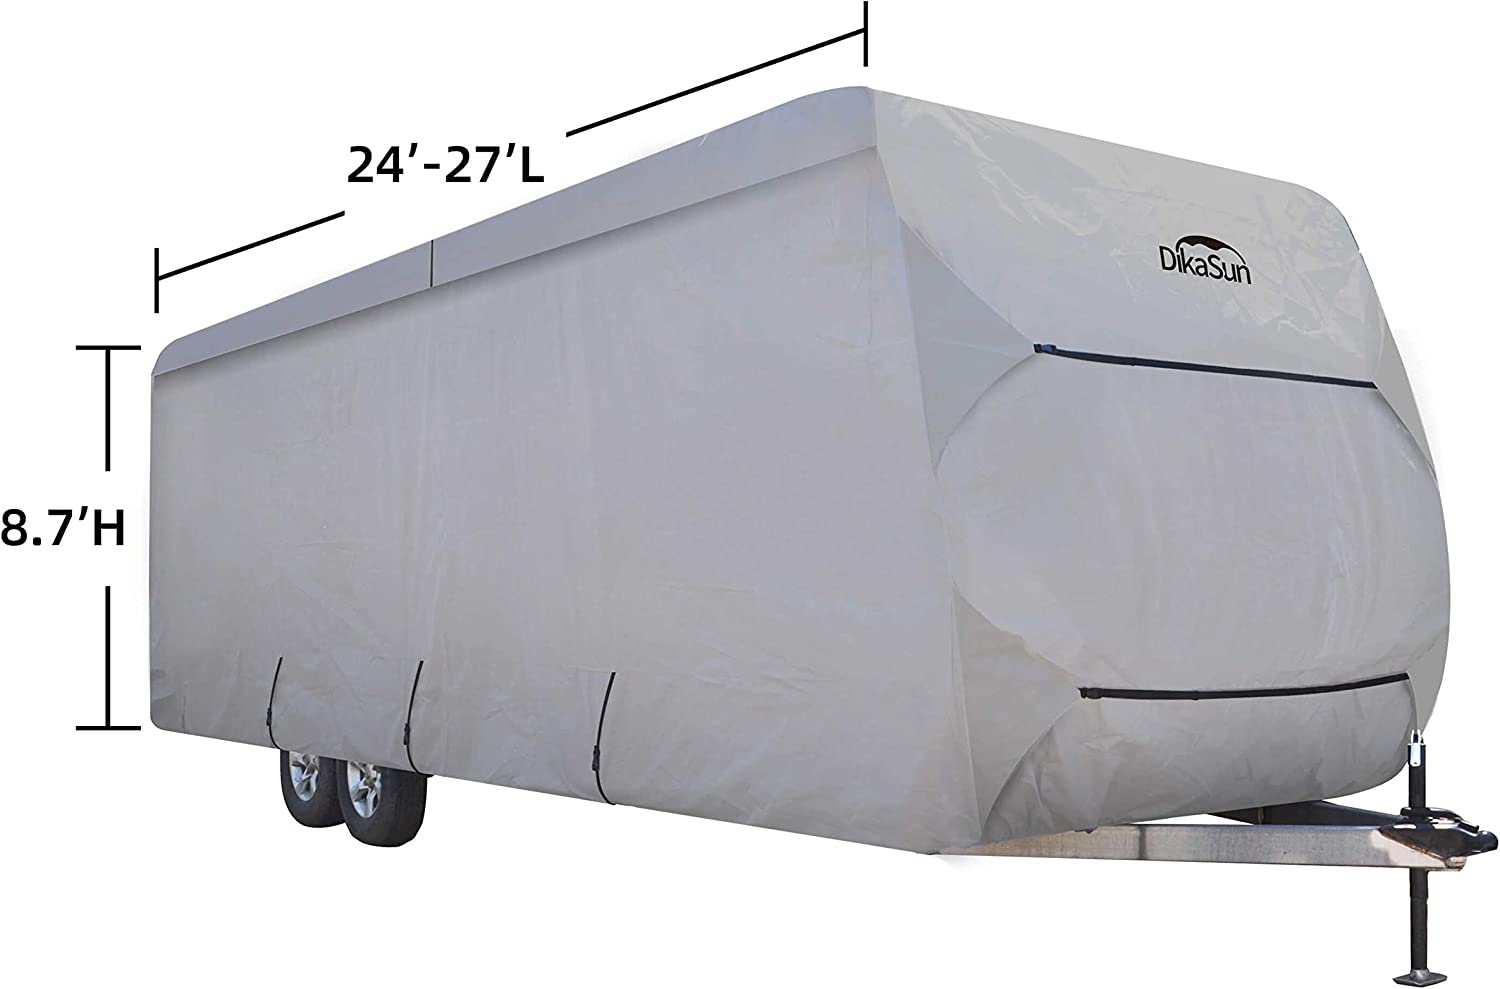 DikaSun Travel Trailer RV Cover PolyPro 3 Layer Anti-Dust Protection Windproof Anti-UV Block Cover fits 20ft